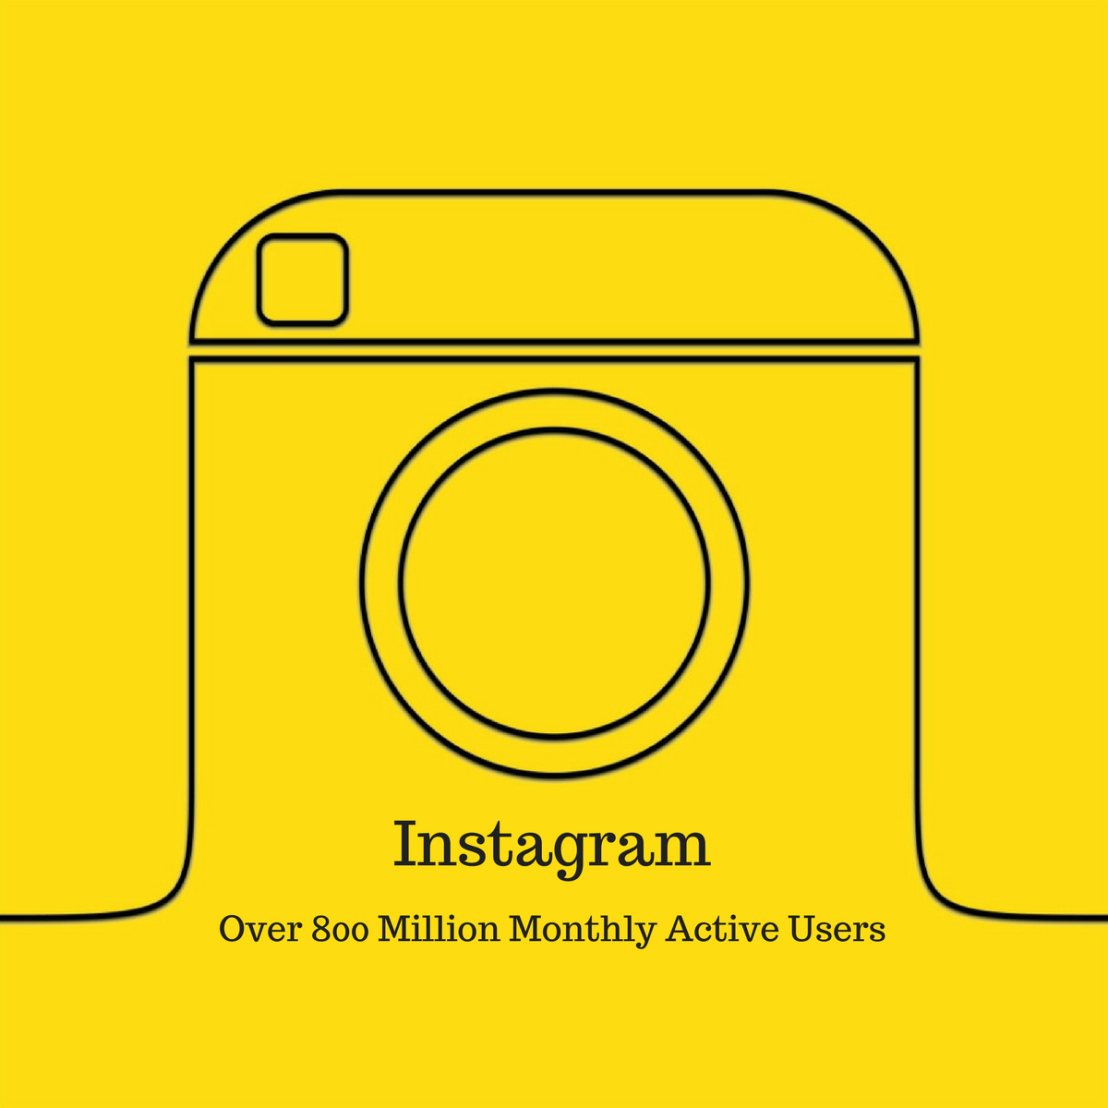 Remarkable Instagram Statistics For Small Business Owners